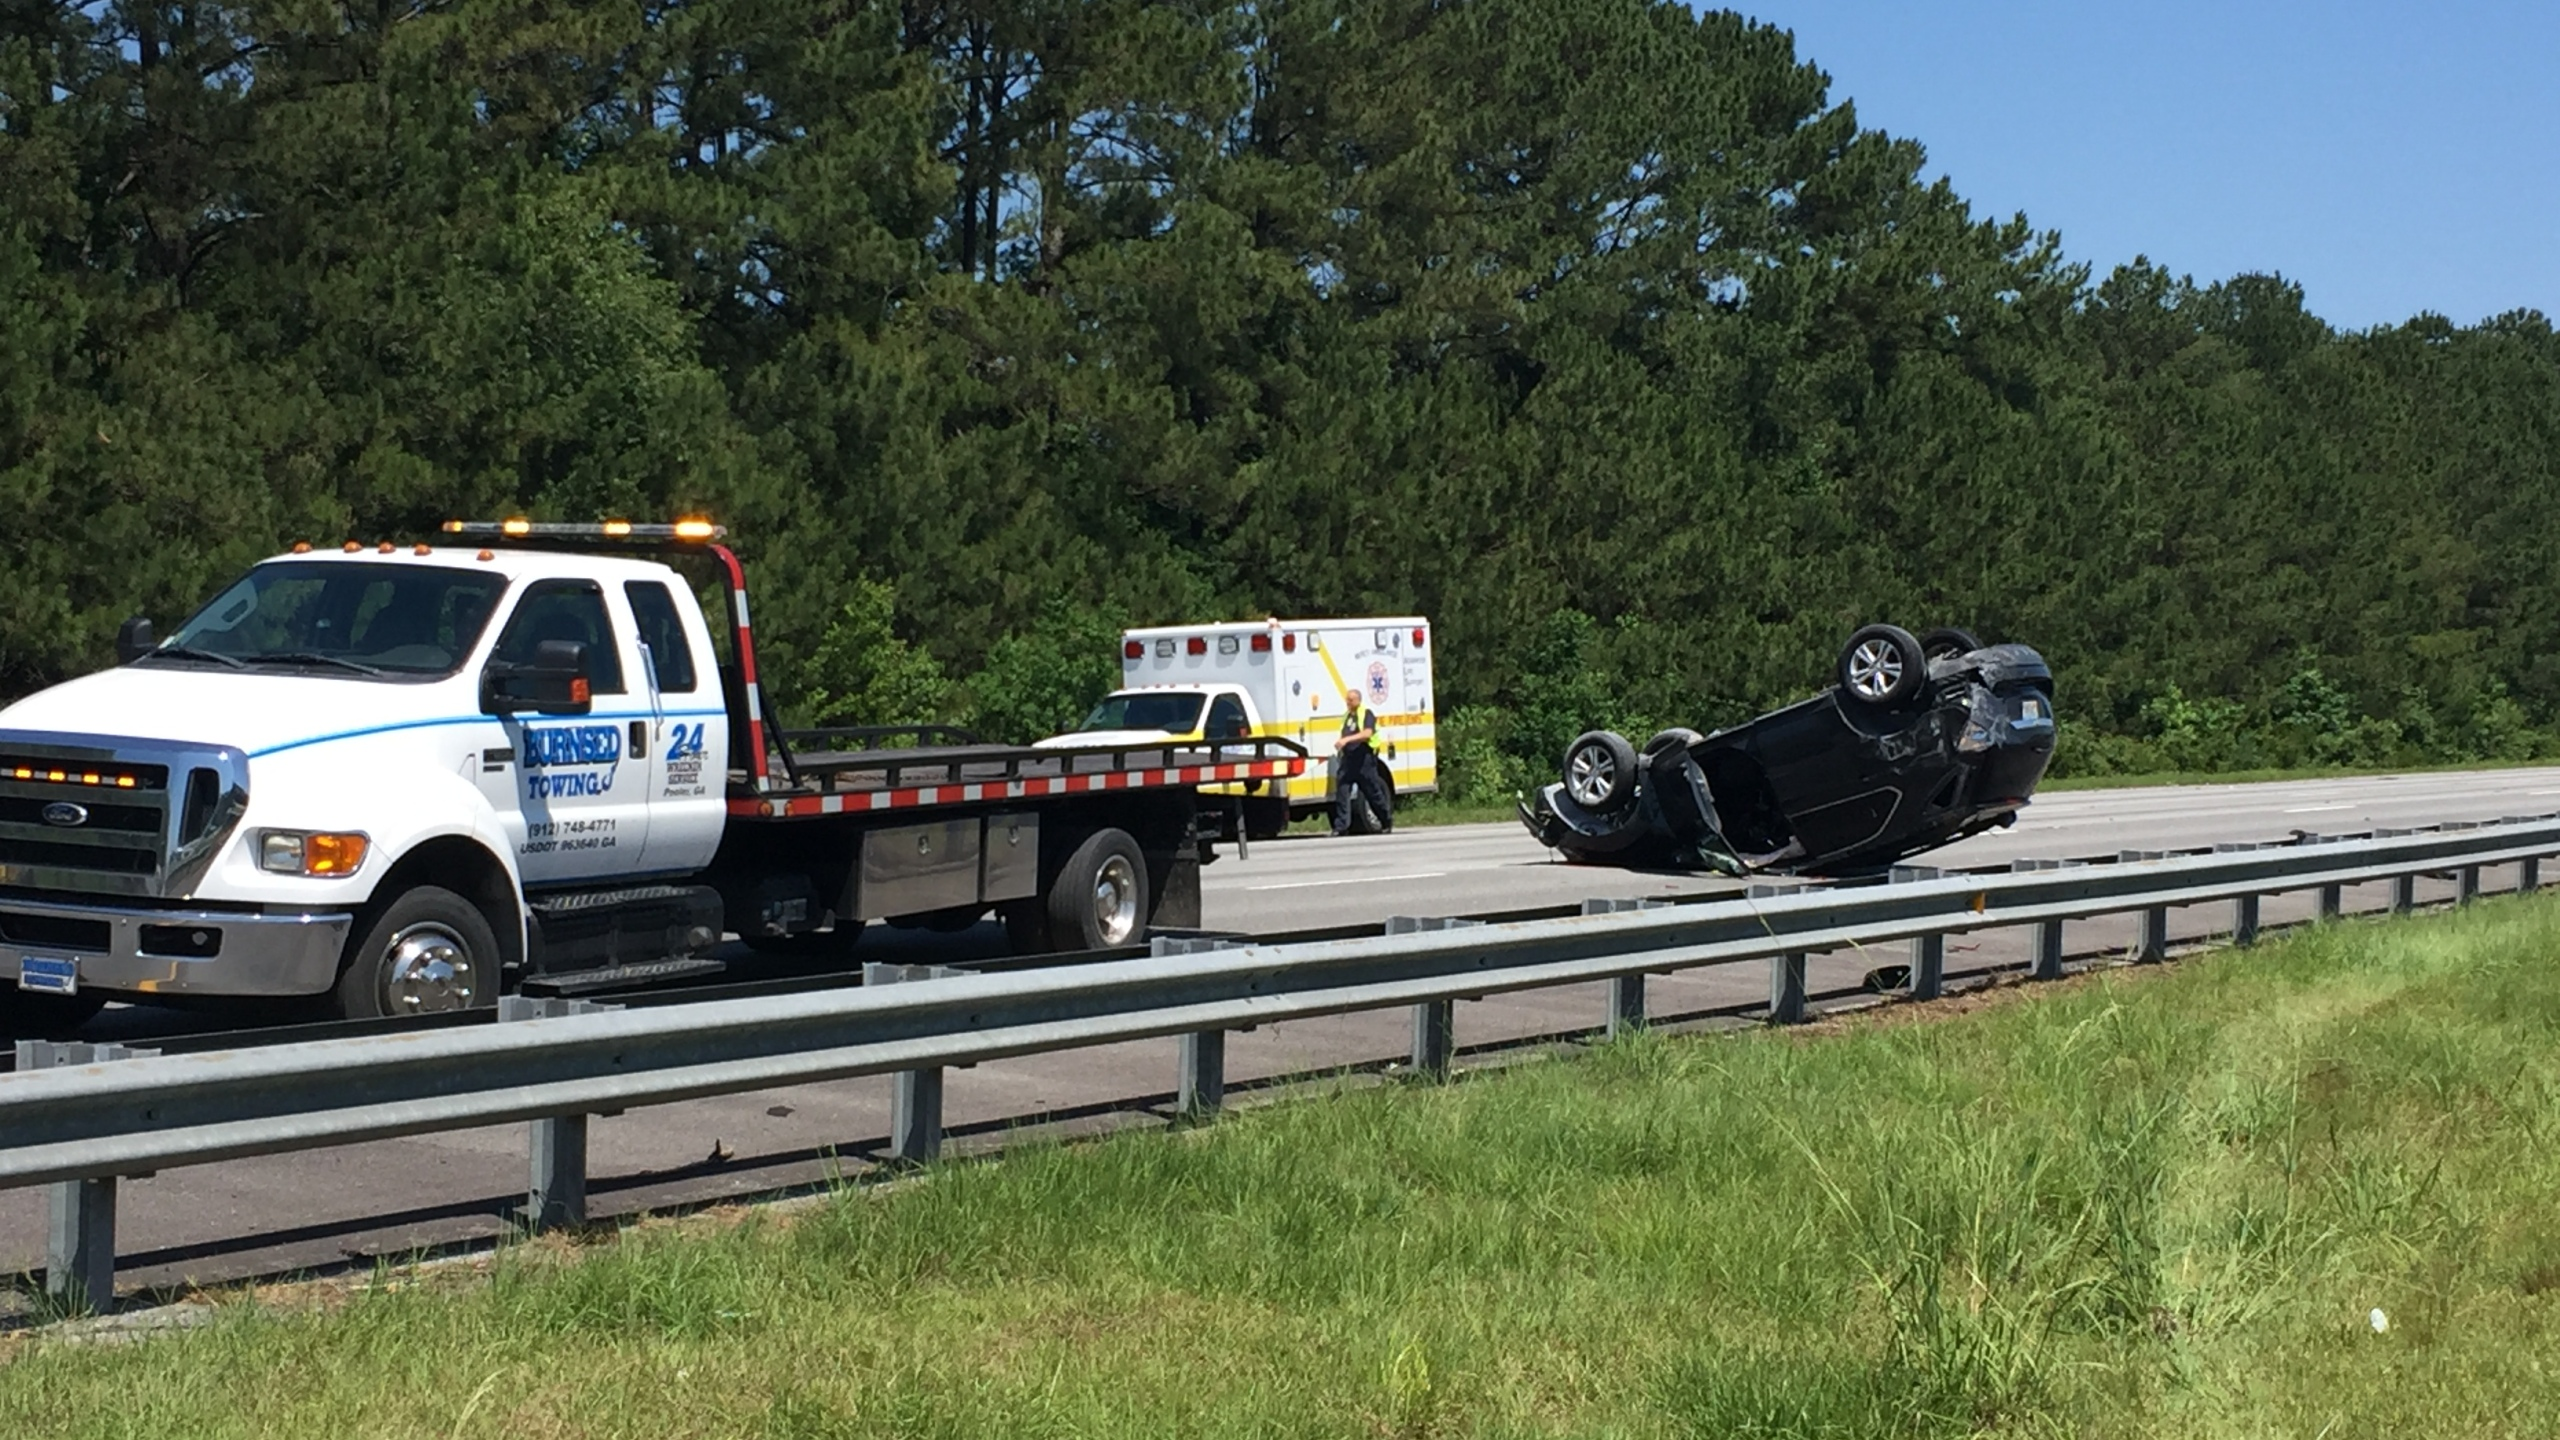 Traffic update: I-95 Southbound now open after accident